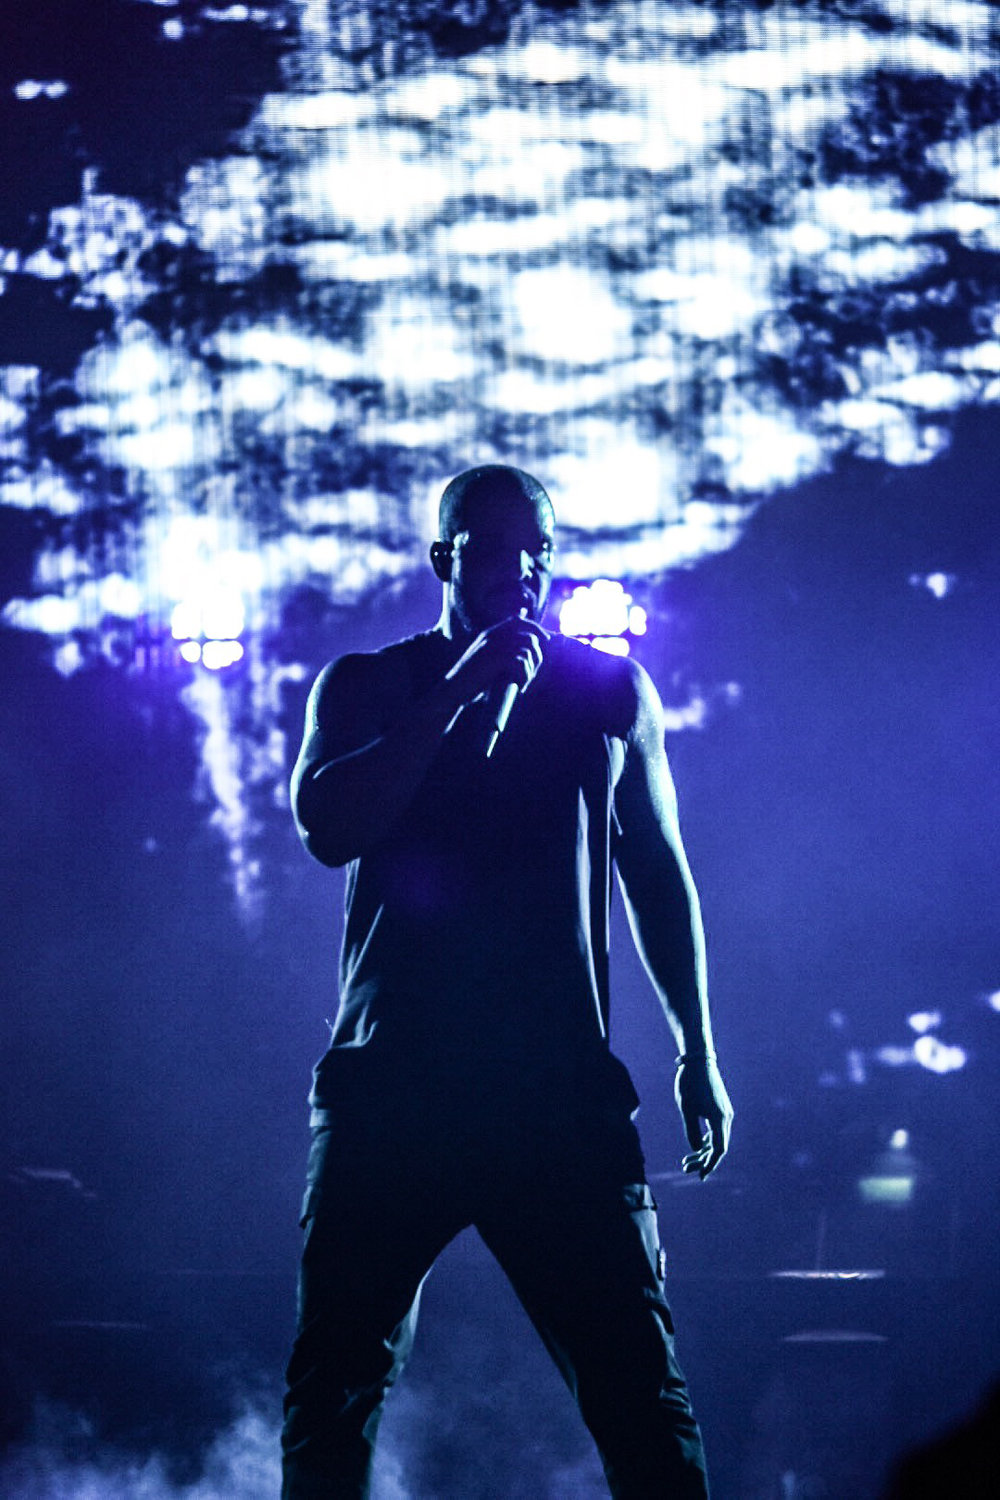 06 - Drake Performs at Glasgow's SSE Hydro as part of The Boy Meets Word Tour - 23-03-17 - Picture By - Calum Buchan Photography.jpg